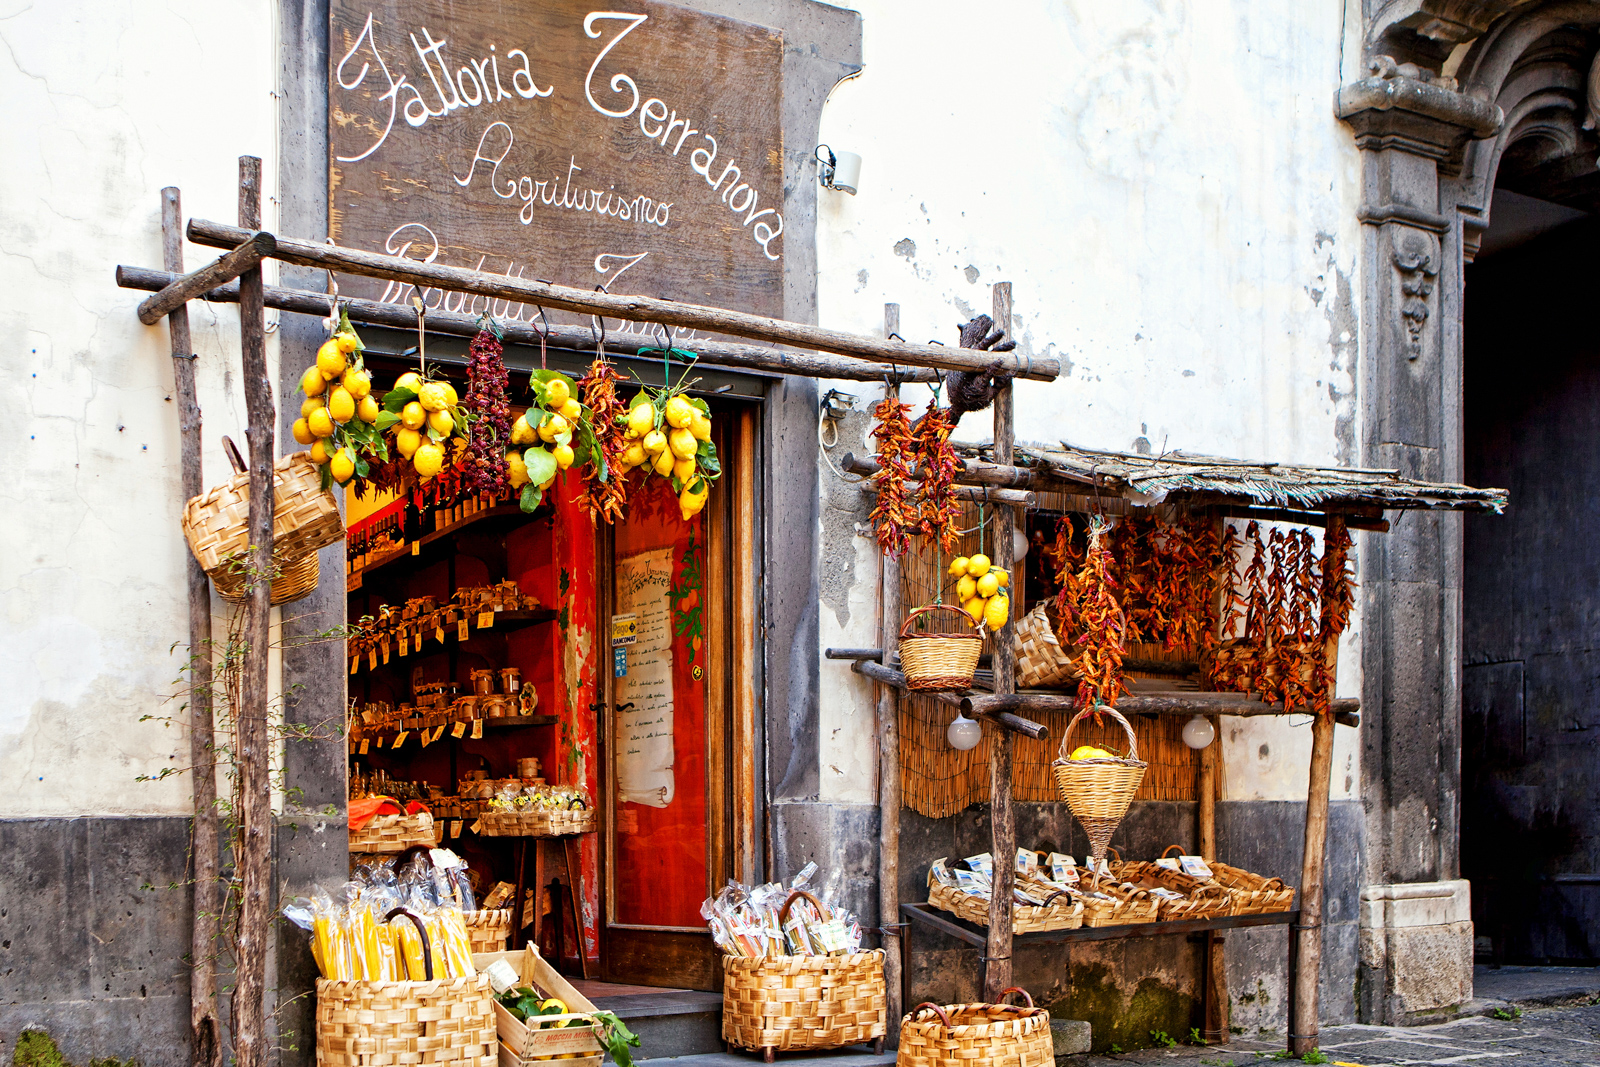 Top things to do in Amalfi Coast vacations in Sorrento, Italy - March 23, 2012. A farmhouse market on a street in Sorrento Italy with fresh pasta and produce for sale